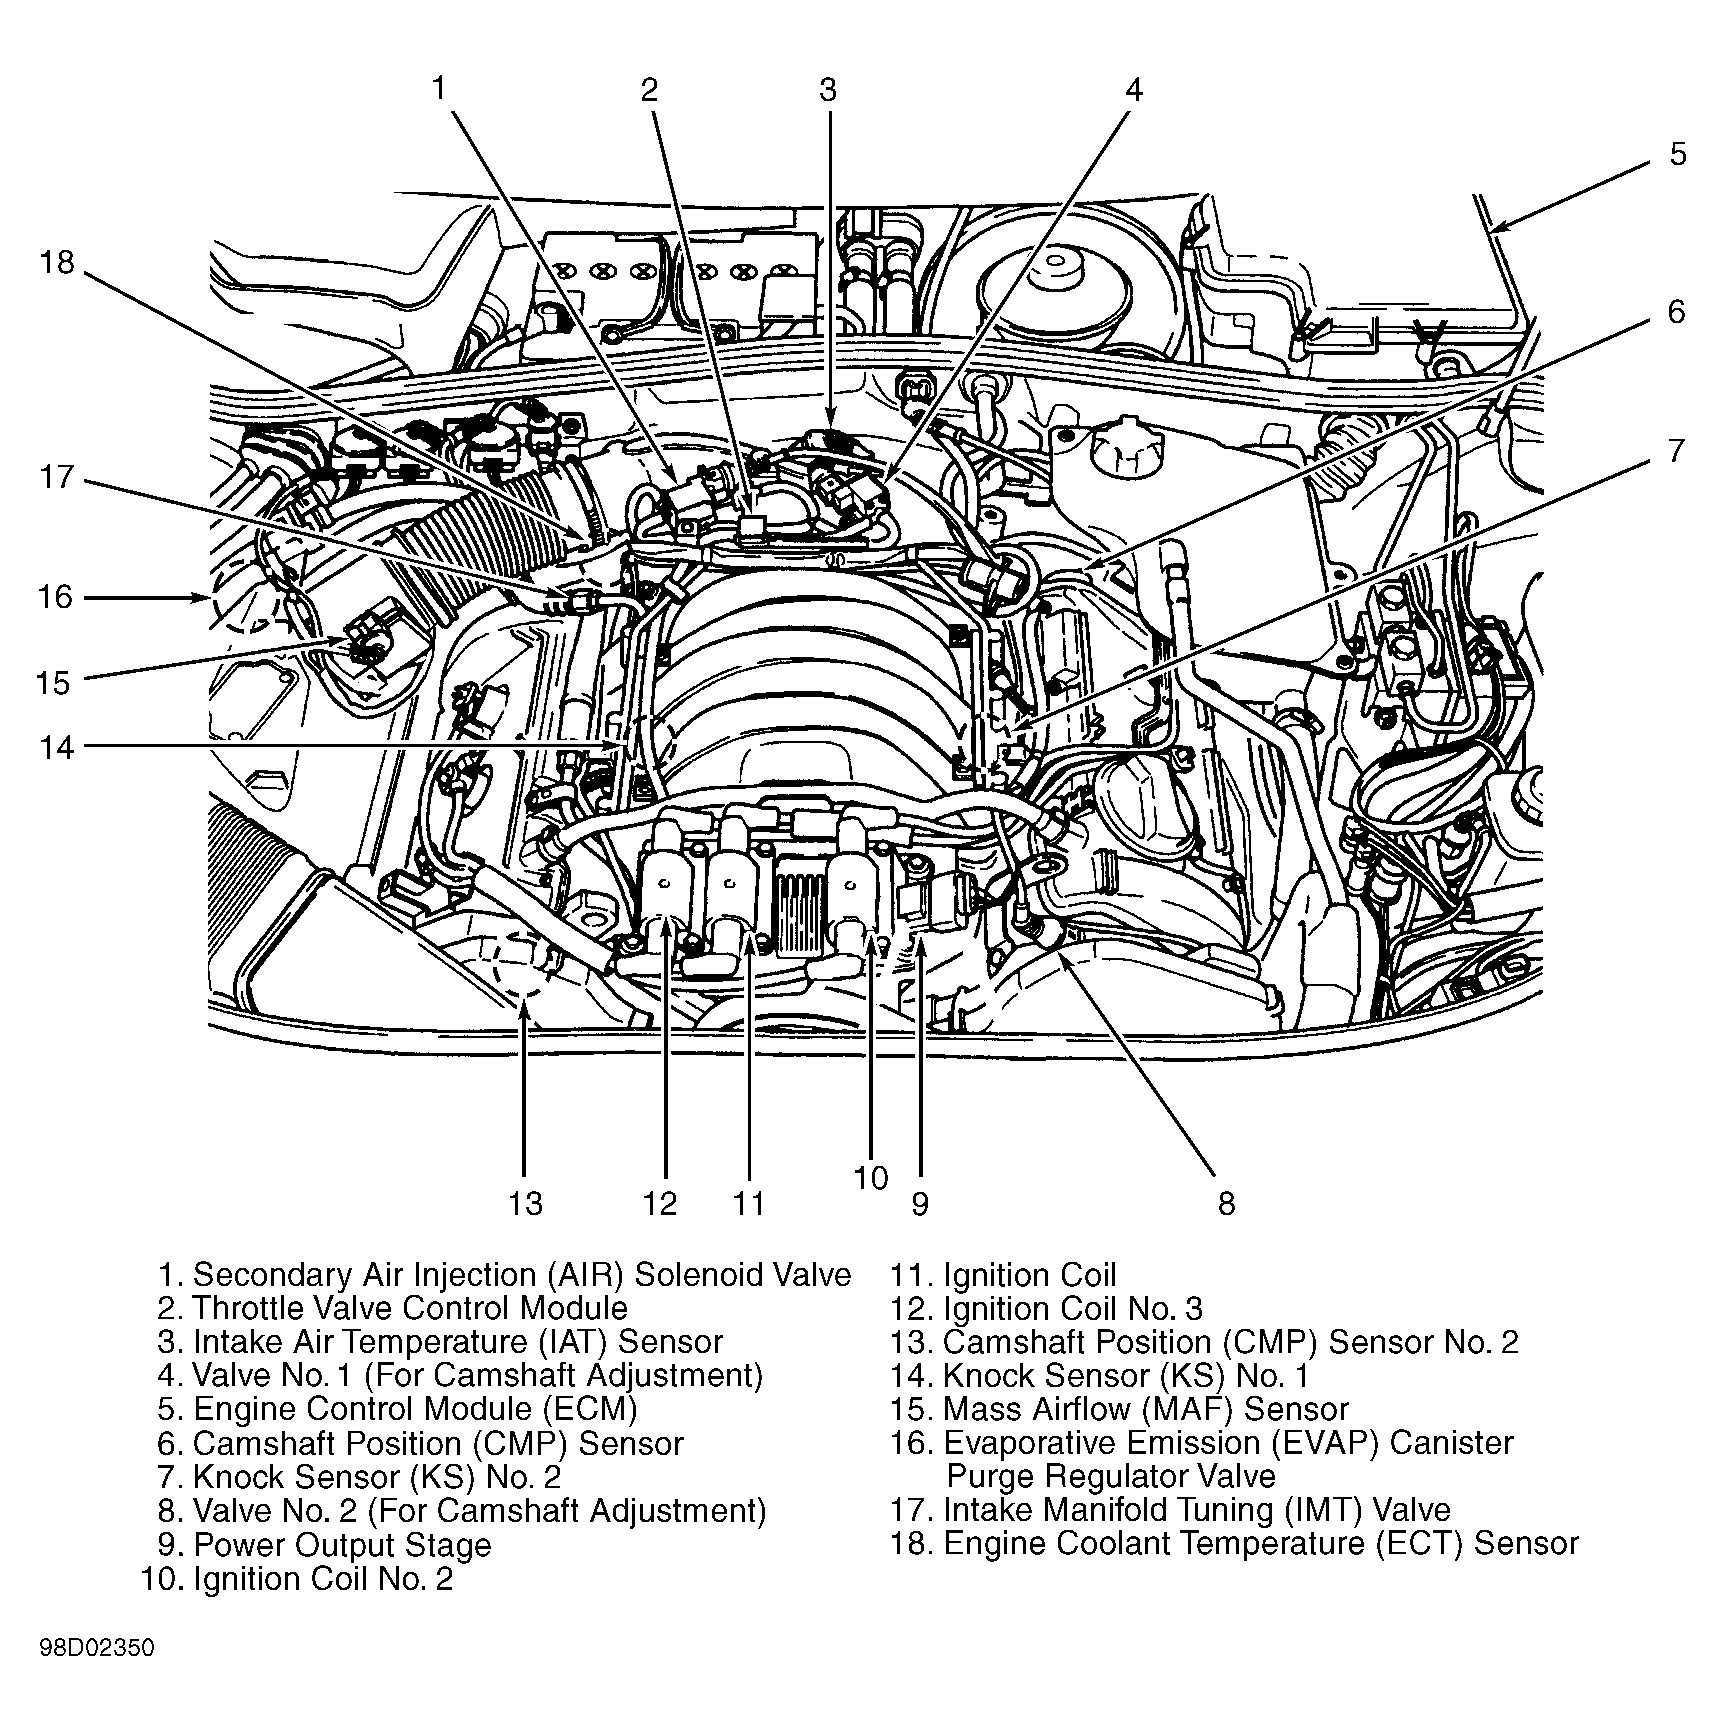 hight resolution of dodge durango wiring harness diagram temp wiring diagram compilation 1999 dodge durango 5 9 engine diagram